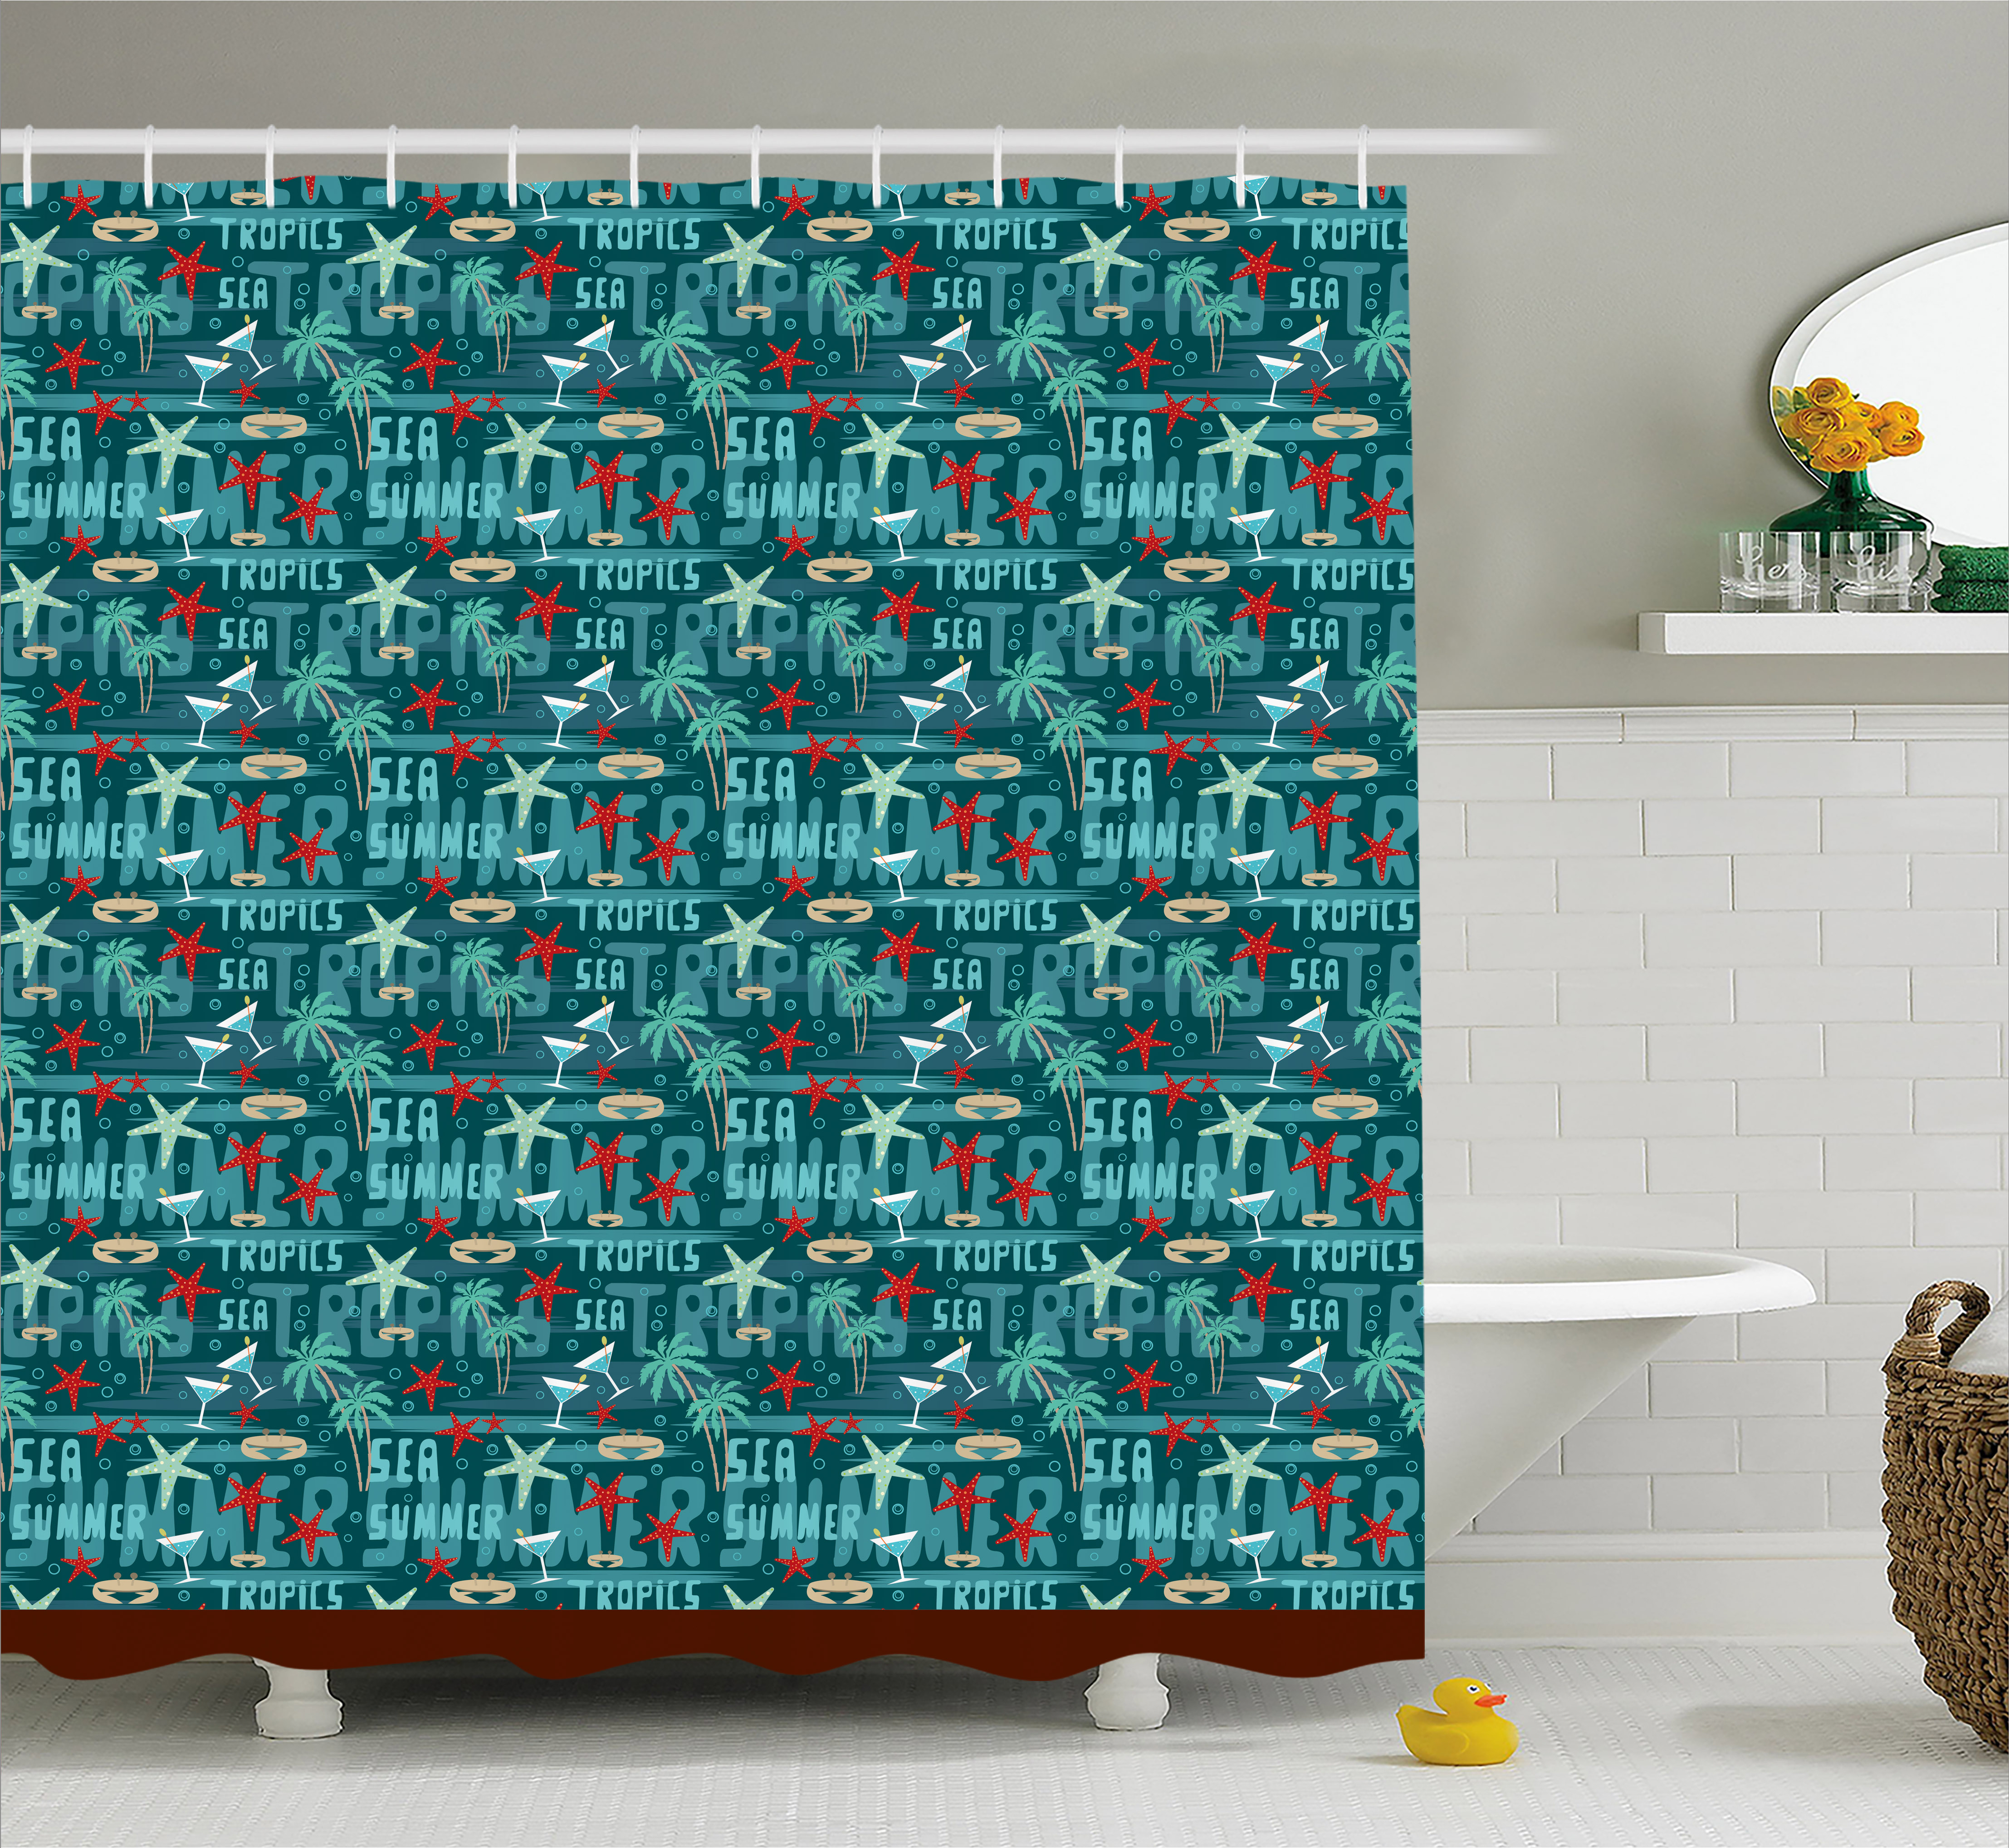 Palm Tree Shower Curtain, Summer Vacation Travel to Tropical Islands Starfish Drums Polynesian Drinks, Fabric Bathroom Set with Hooks, 69W X 70L Inches, Teal Beige Red, by Ambesonne